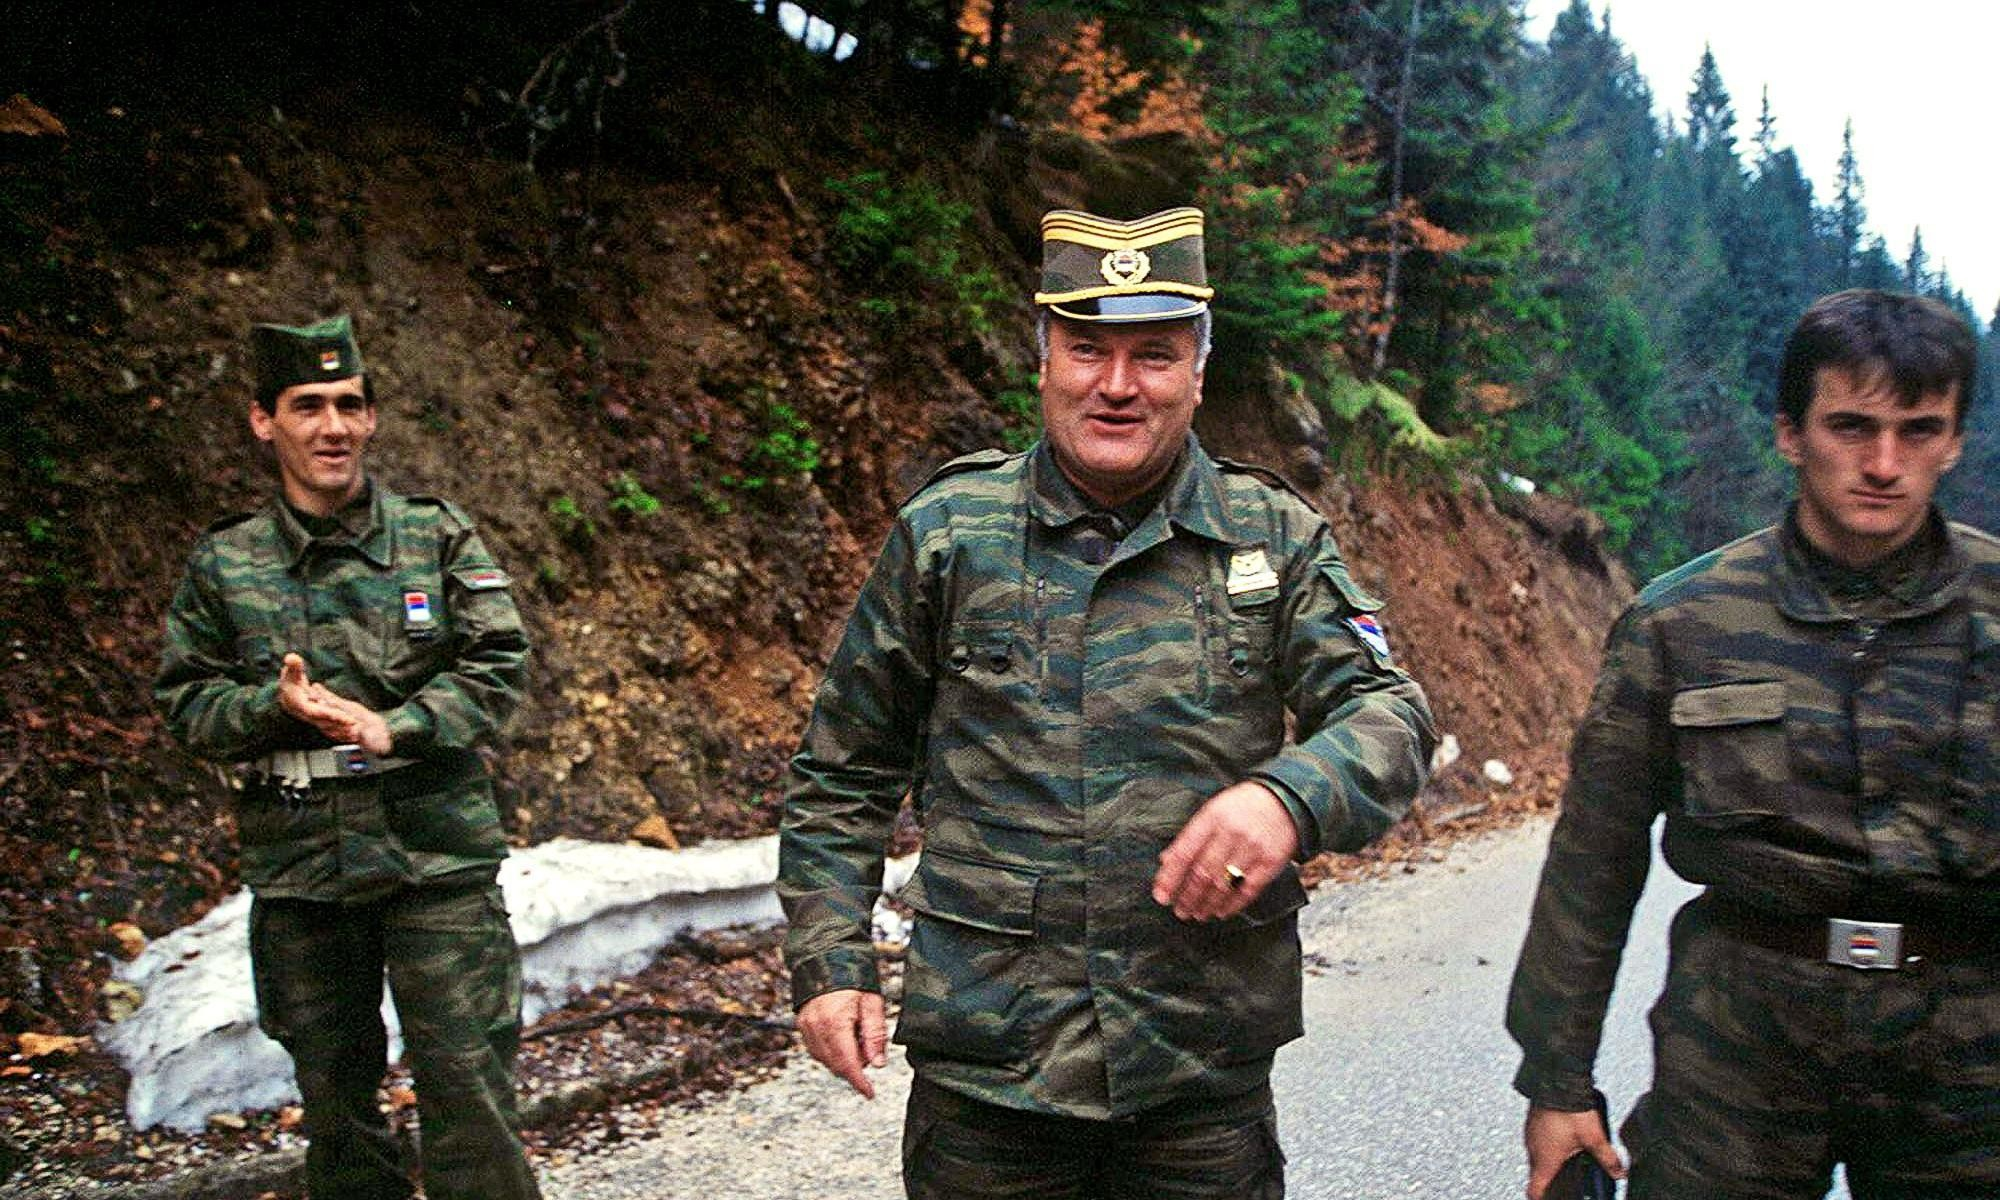 14 years a fugitive: the hunt for Ratko Mladic, the Butcher of Bosnia